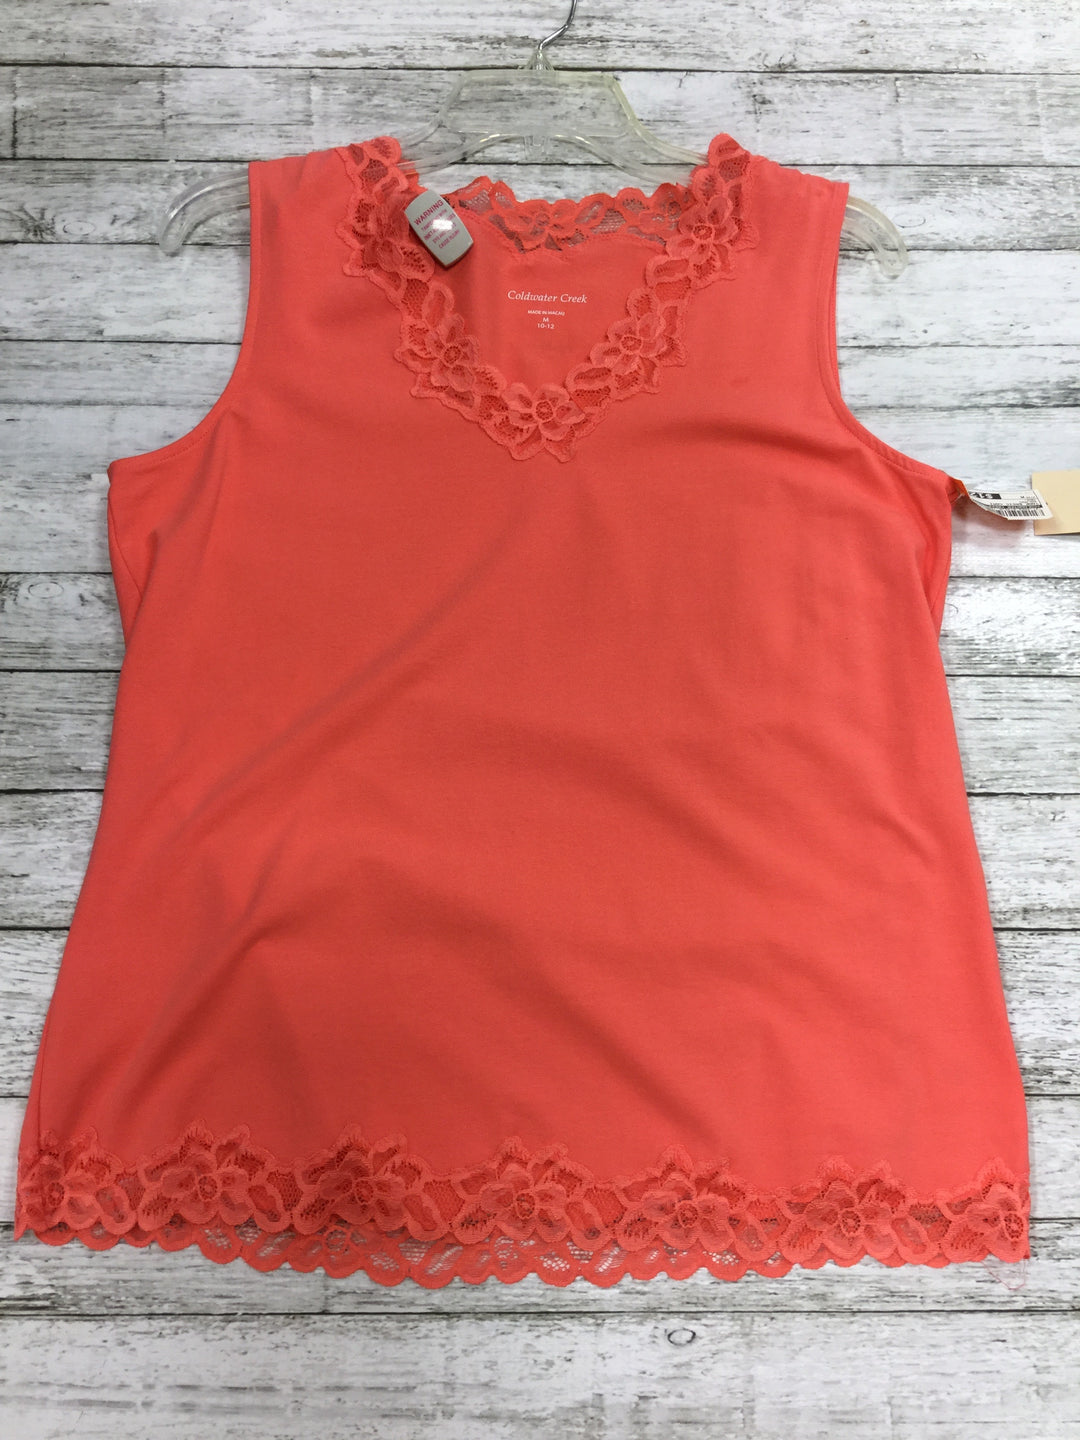 Primary Photo - BRAND: COLDWATER CREEK , STYLE: TANK BASIC CAMI , COLOR: SALMON , SIZE: M , OTHER INFO: NEW! , SKU: 127-4559-9745